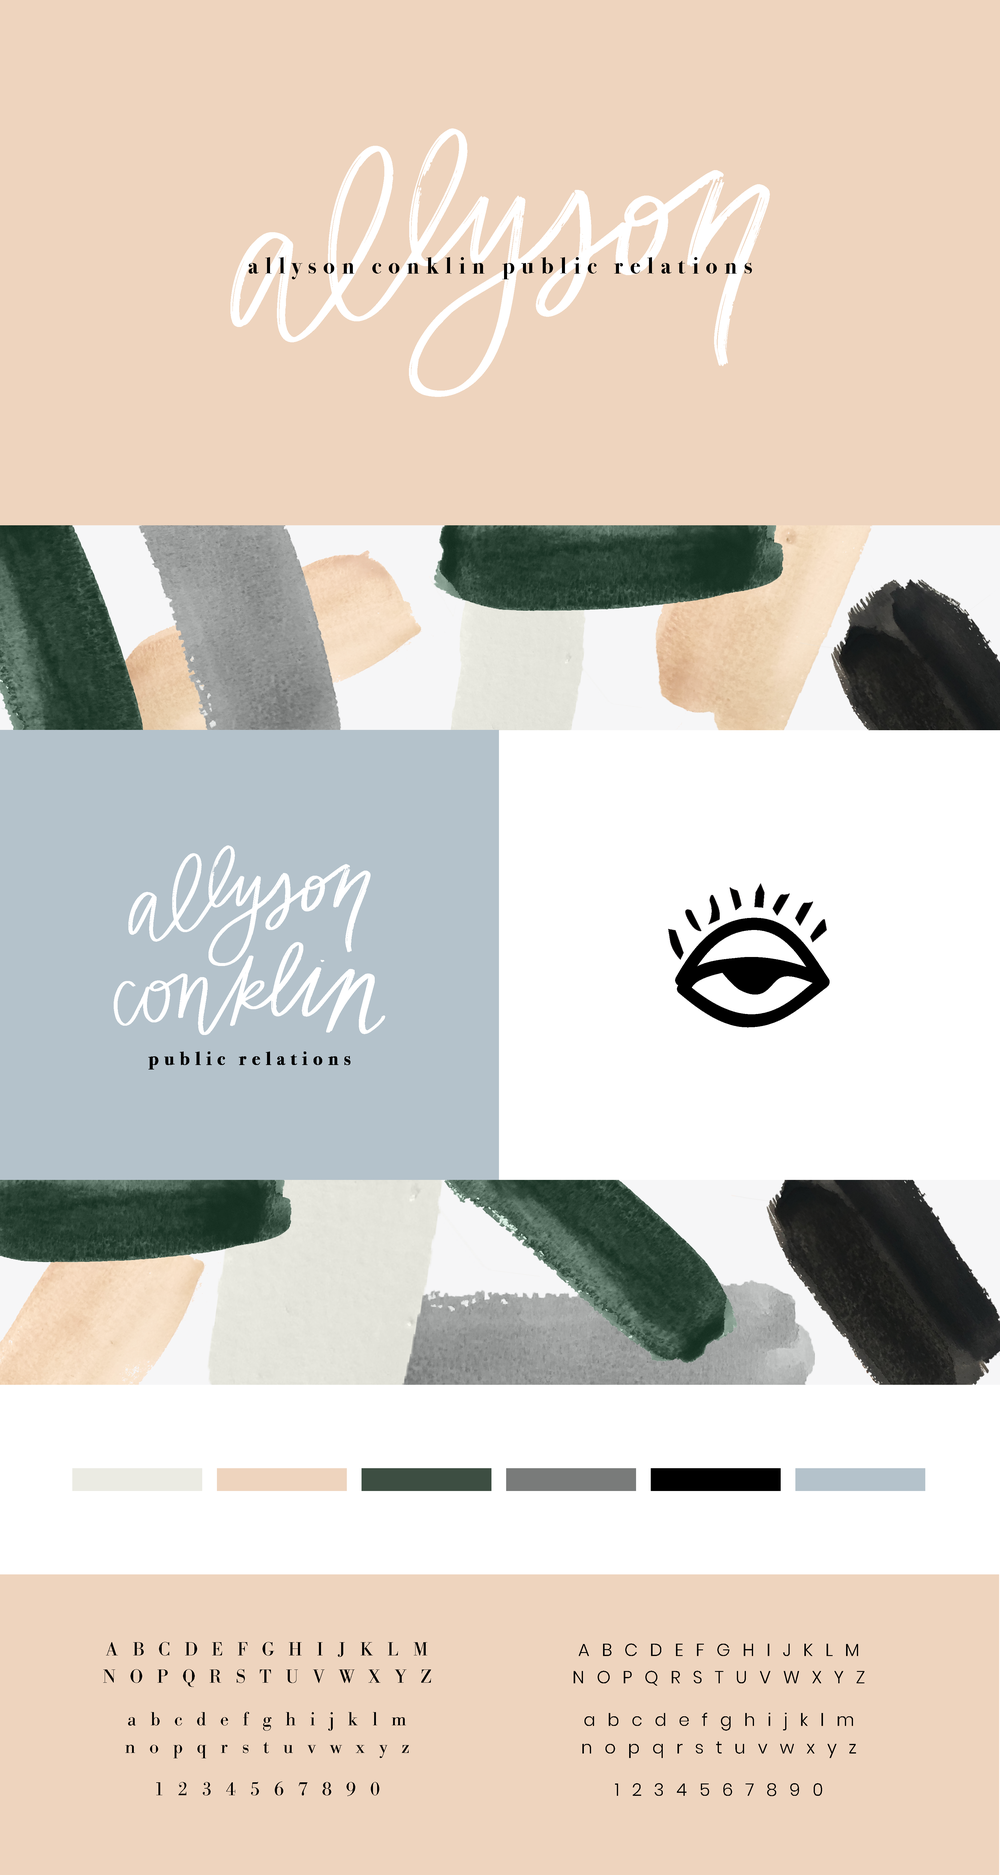 allyson+conklin+public+relations+website+homepage+wordpress+webdesign+paint+pattern+typography+brush+script+serif+sansserif+nude+green+grey+black+site+branding+logo+feminine+hand-lettering+solid+color+eclectic+stylish+sophisticated+logo